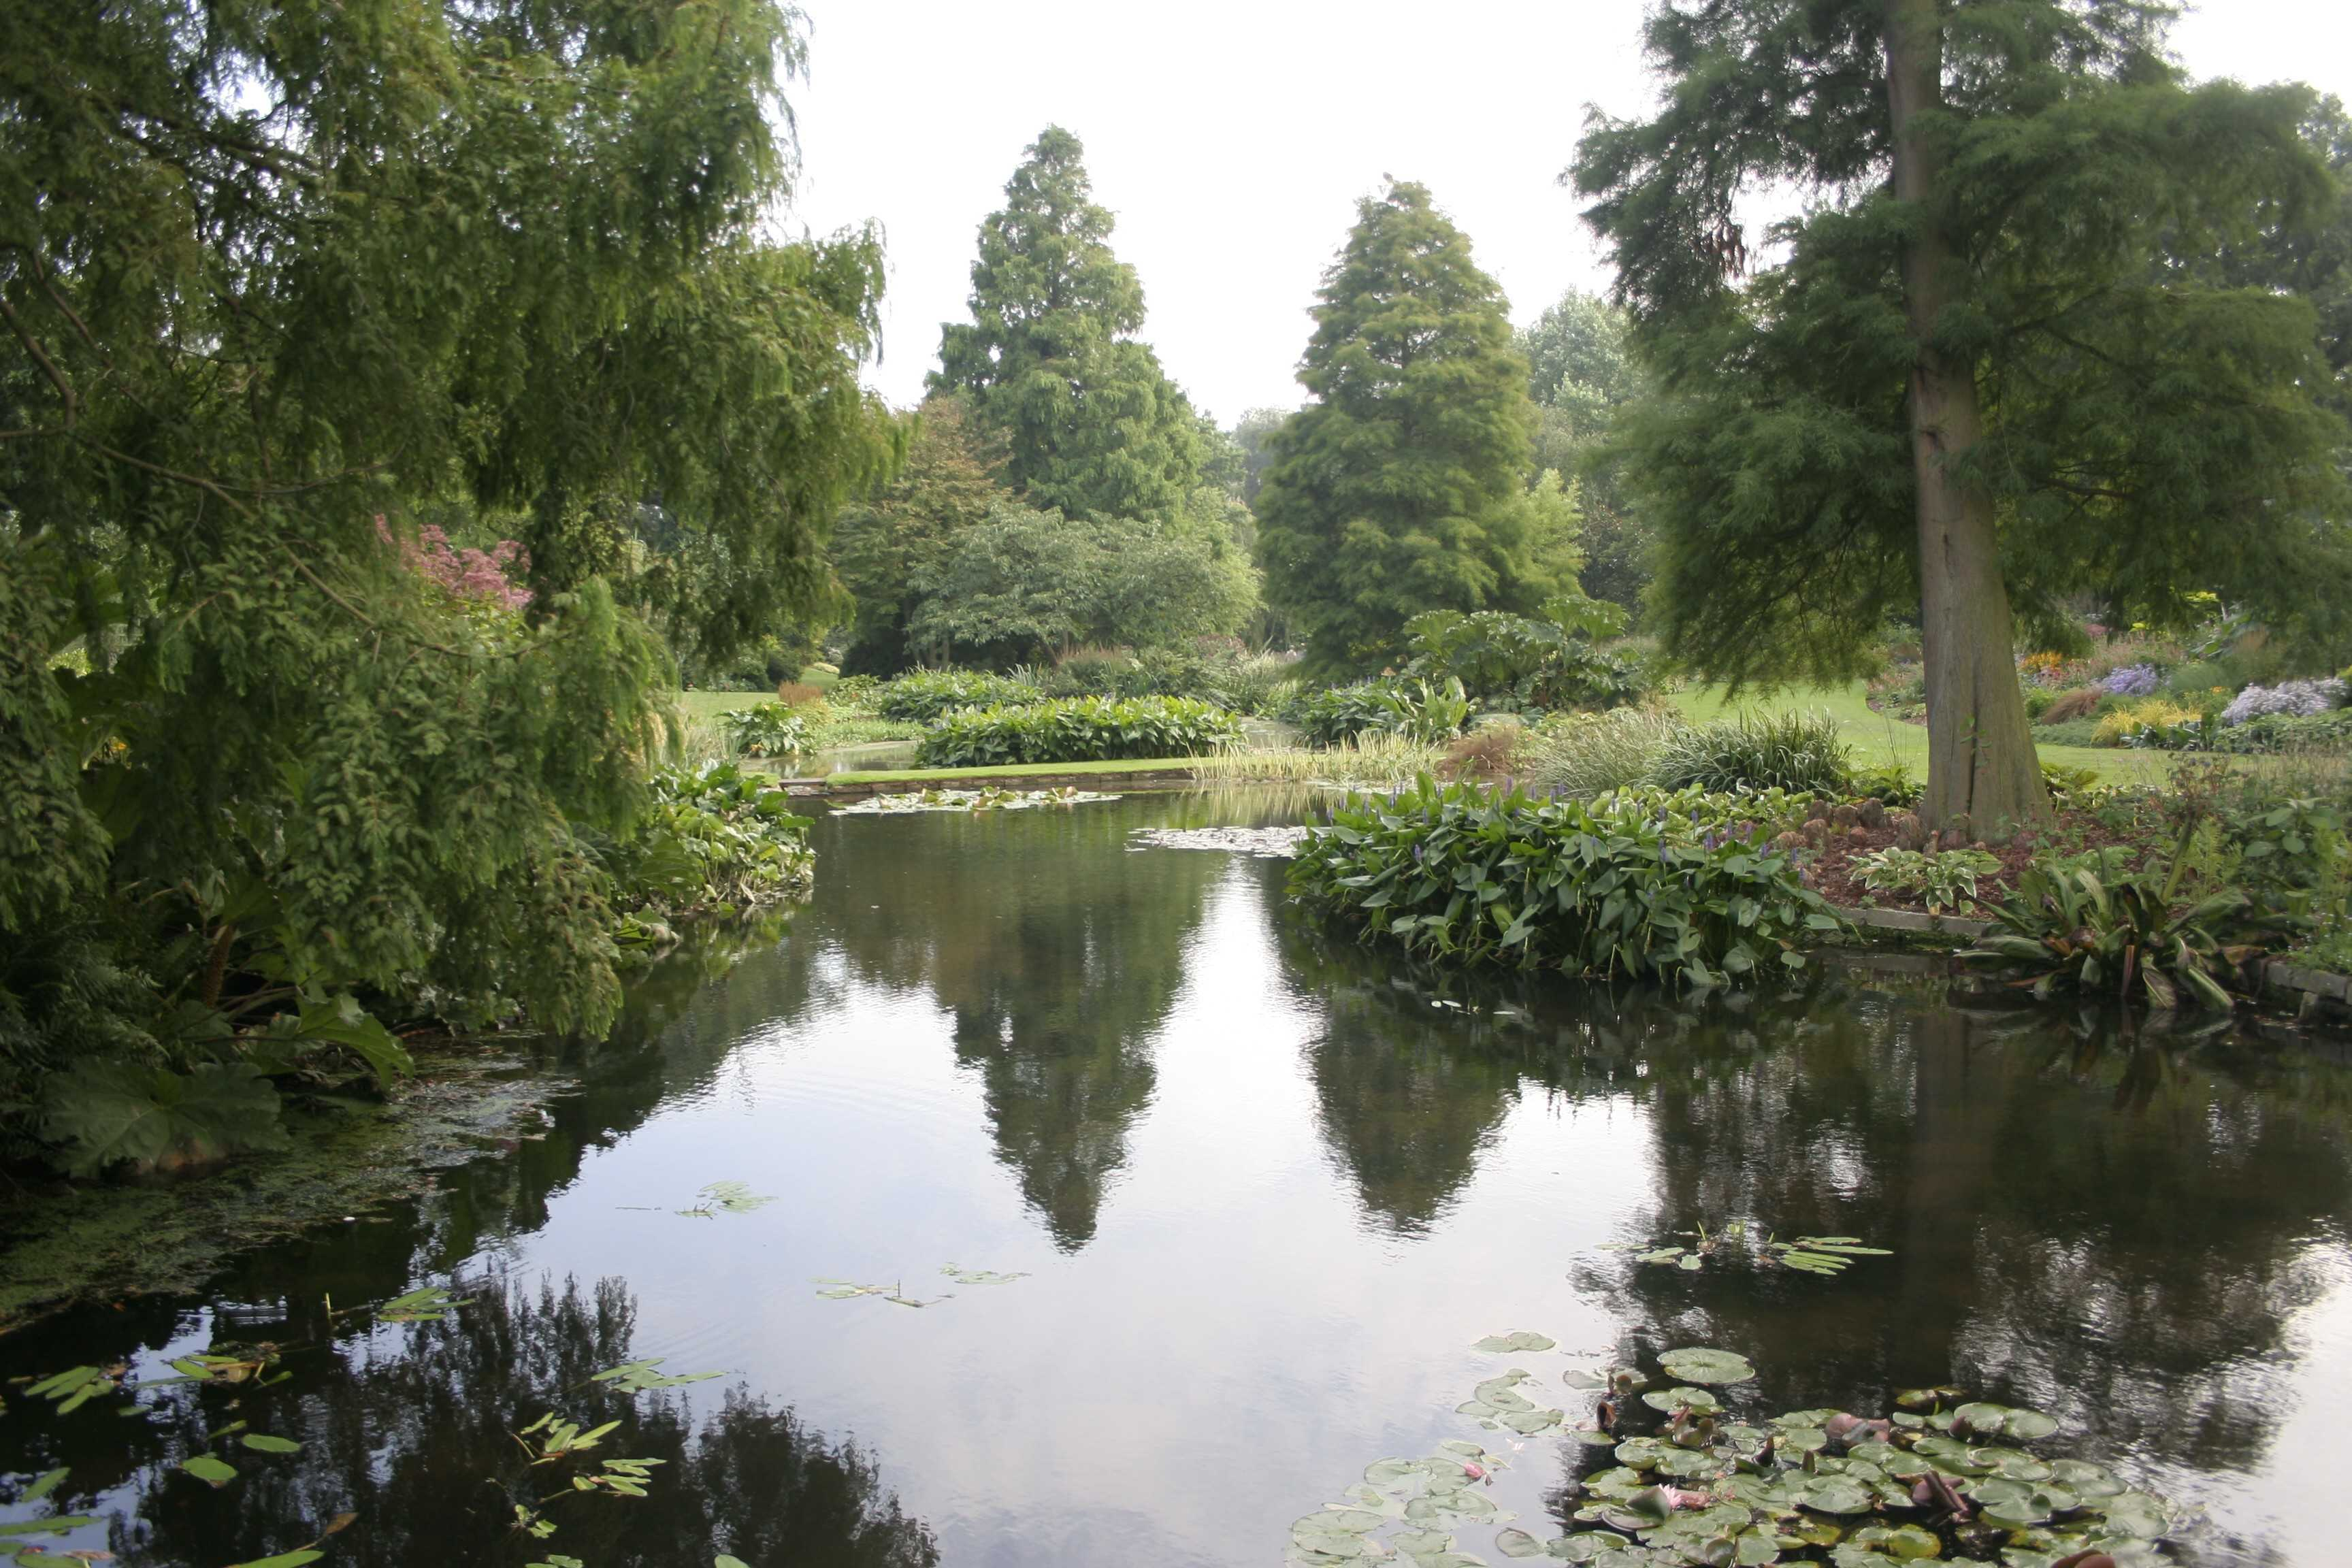 The Beth Chatto Gardens, Colchester